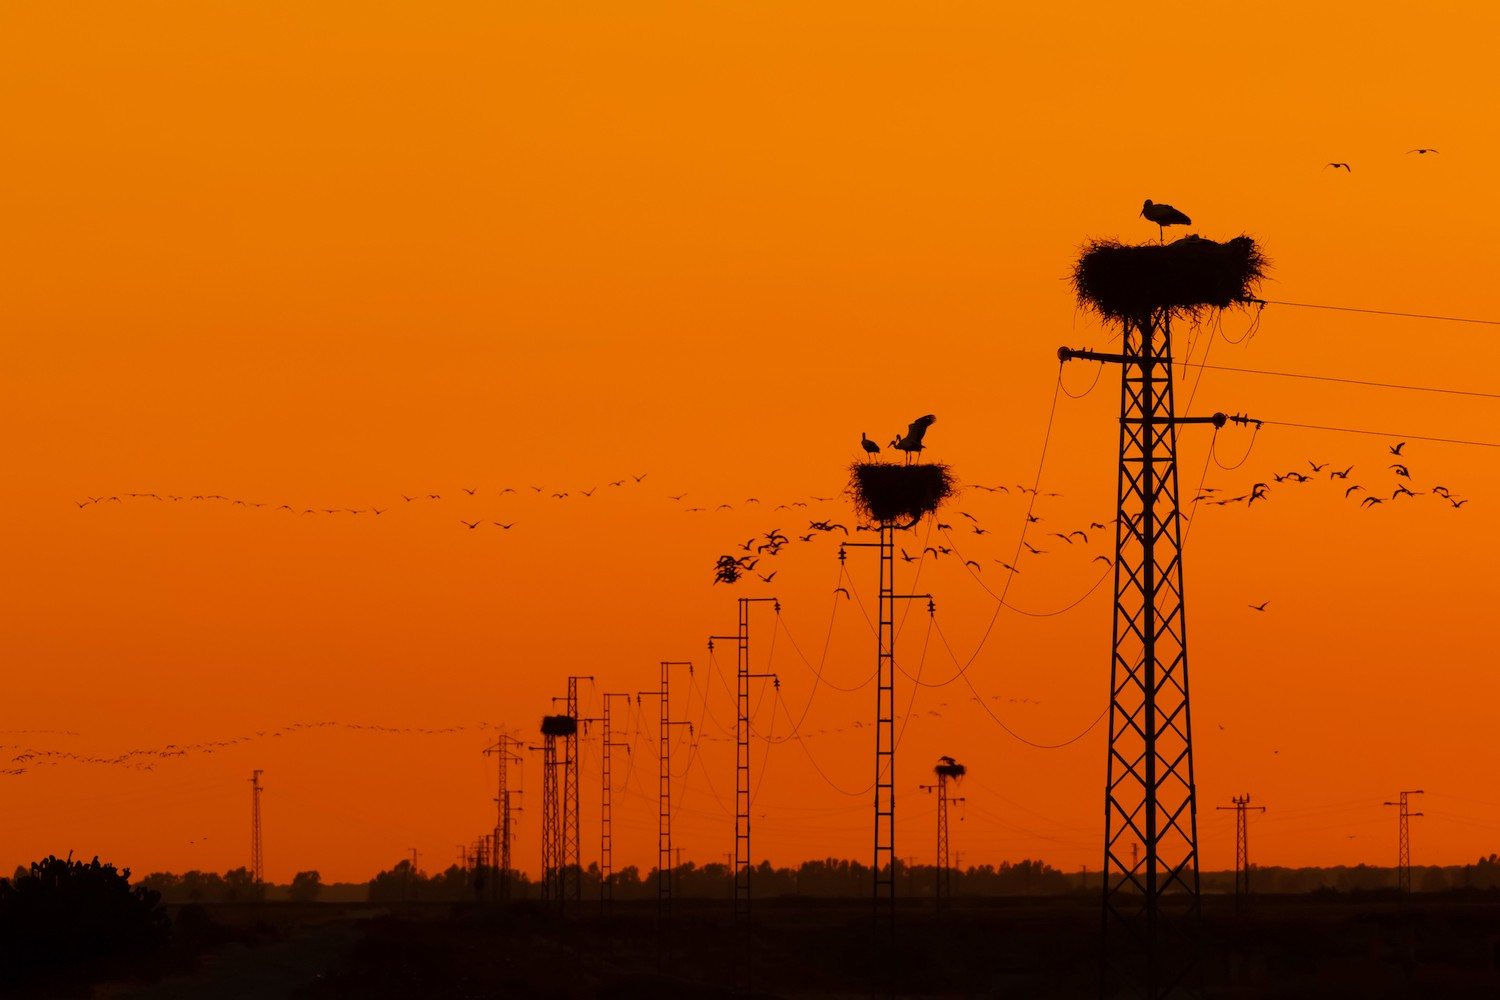 A row of power lines receding into the distance; 3 of them have large nests on top of them. Many birds fly in the orange sky.